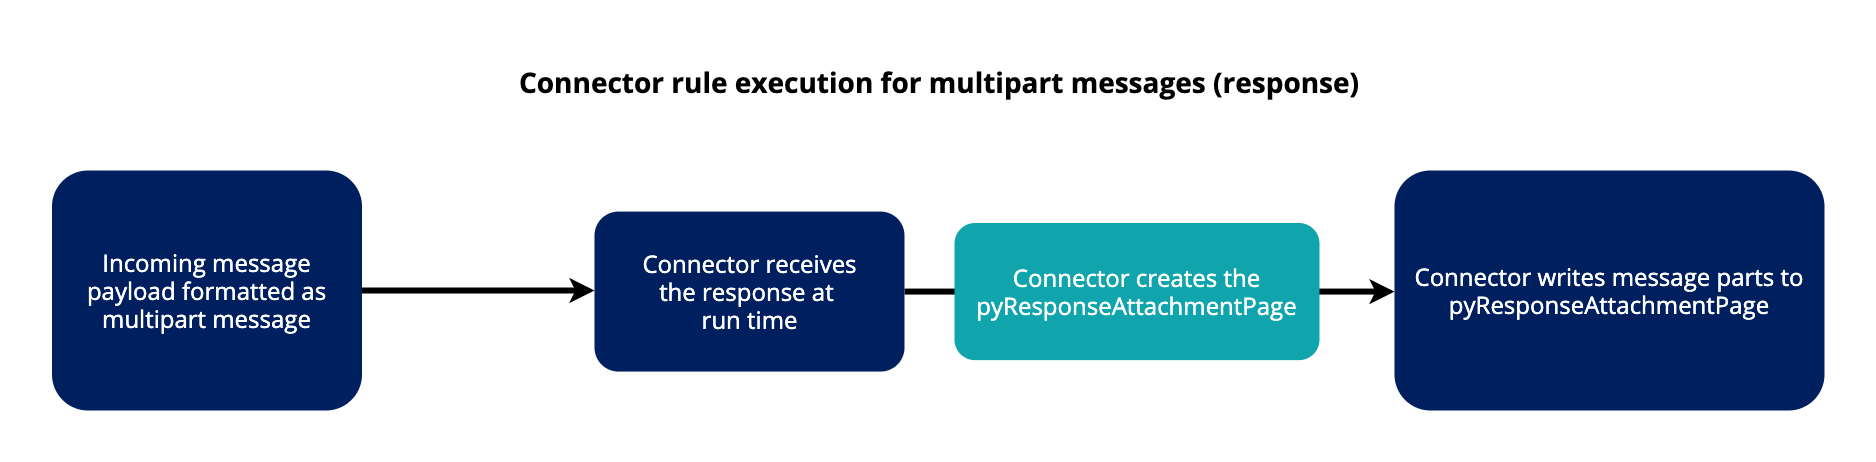 Diagram of connector rule execution for multipart messages response